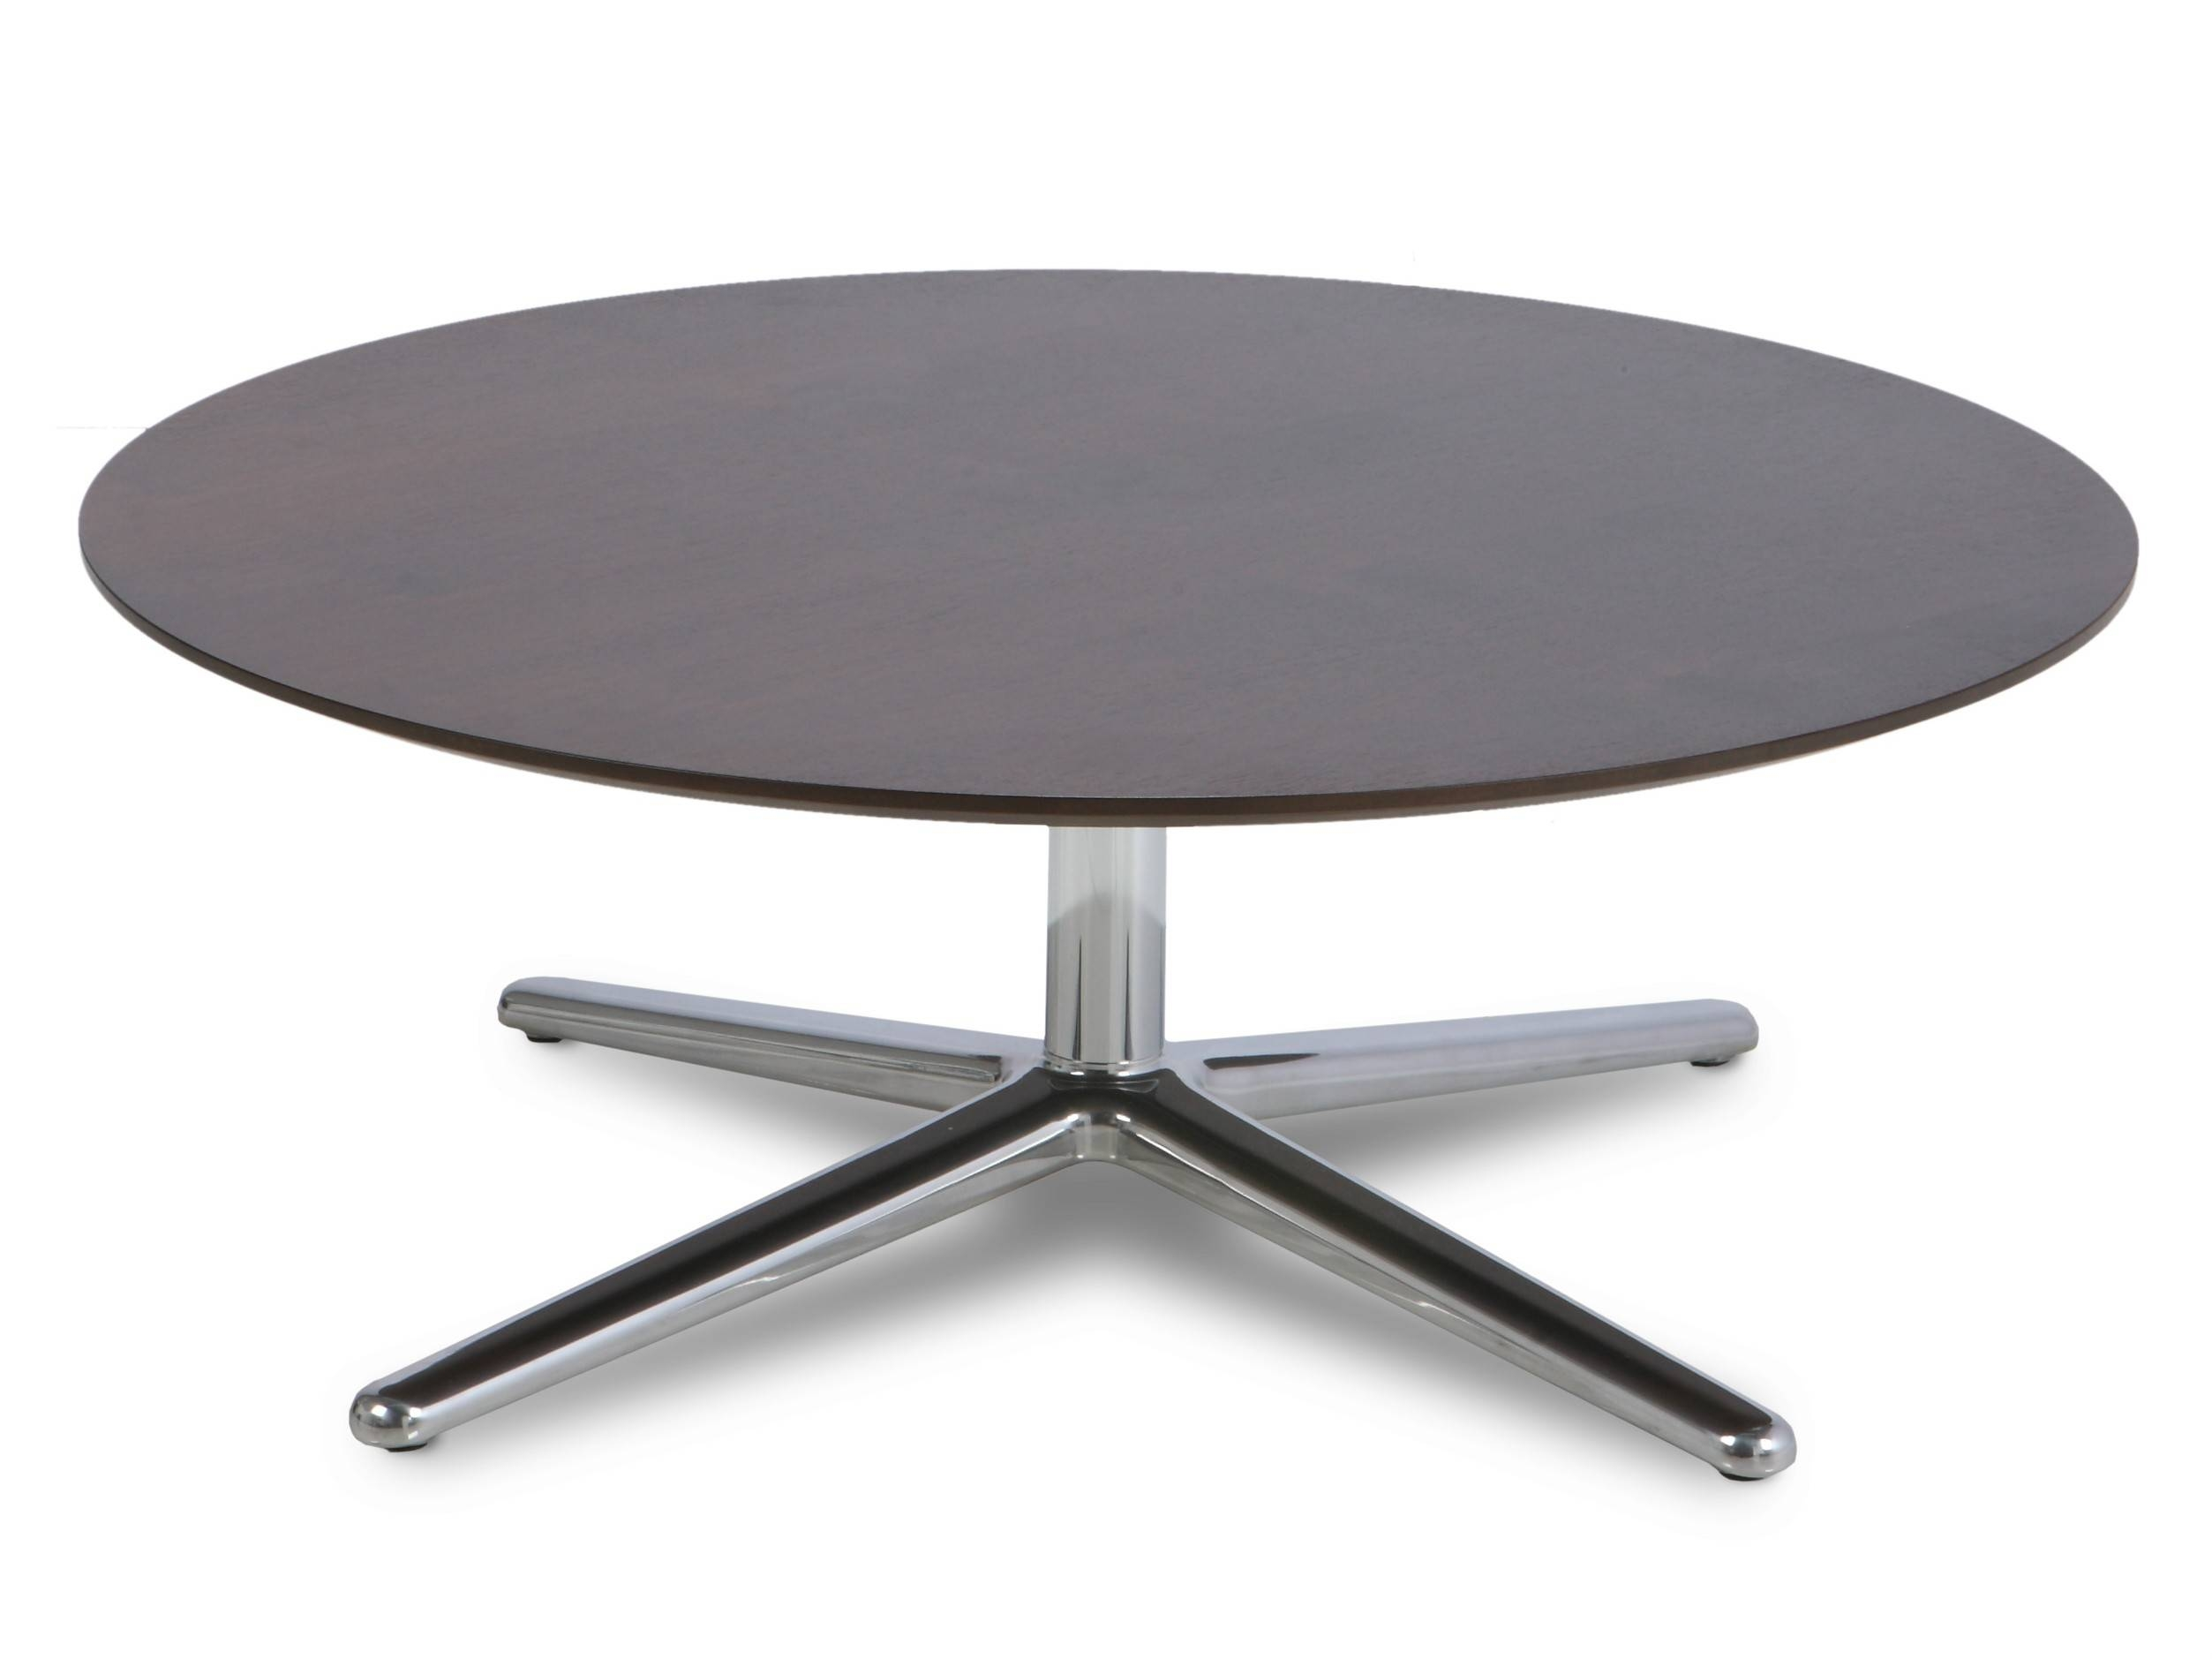 Round Glass Coffee Table With Chrome Legs | Coffee Tables Decoration with Chrome and Wood Coffee Tables (Image 22 of 30)